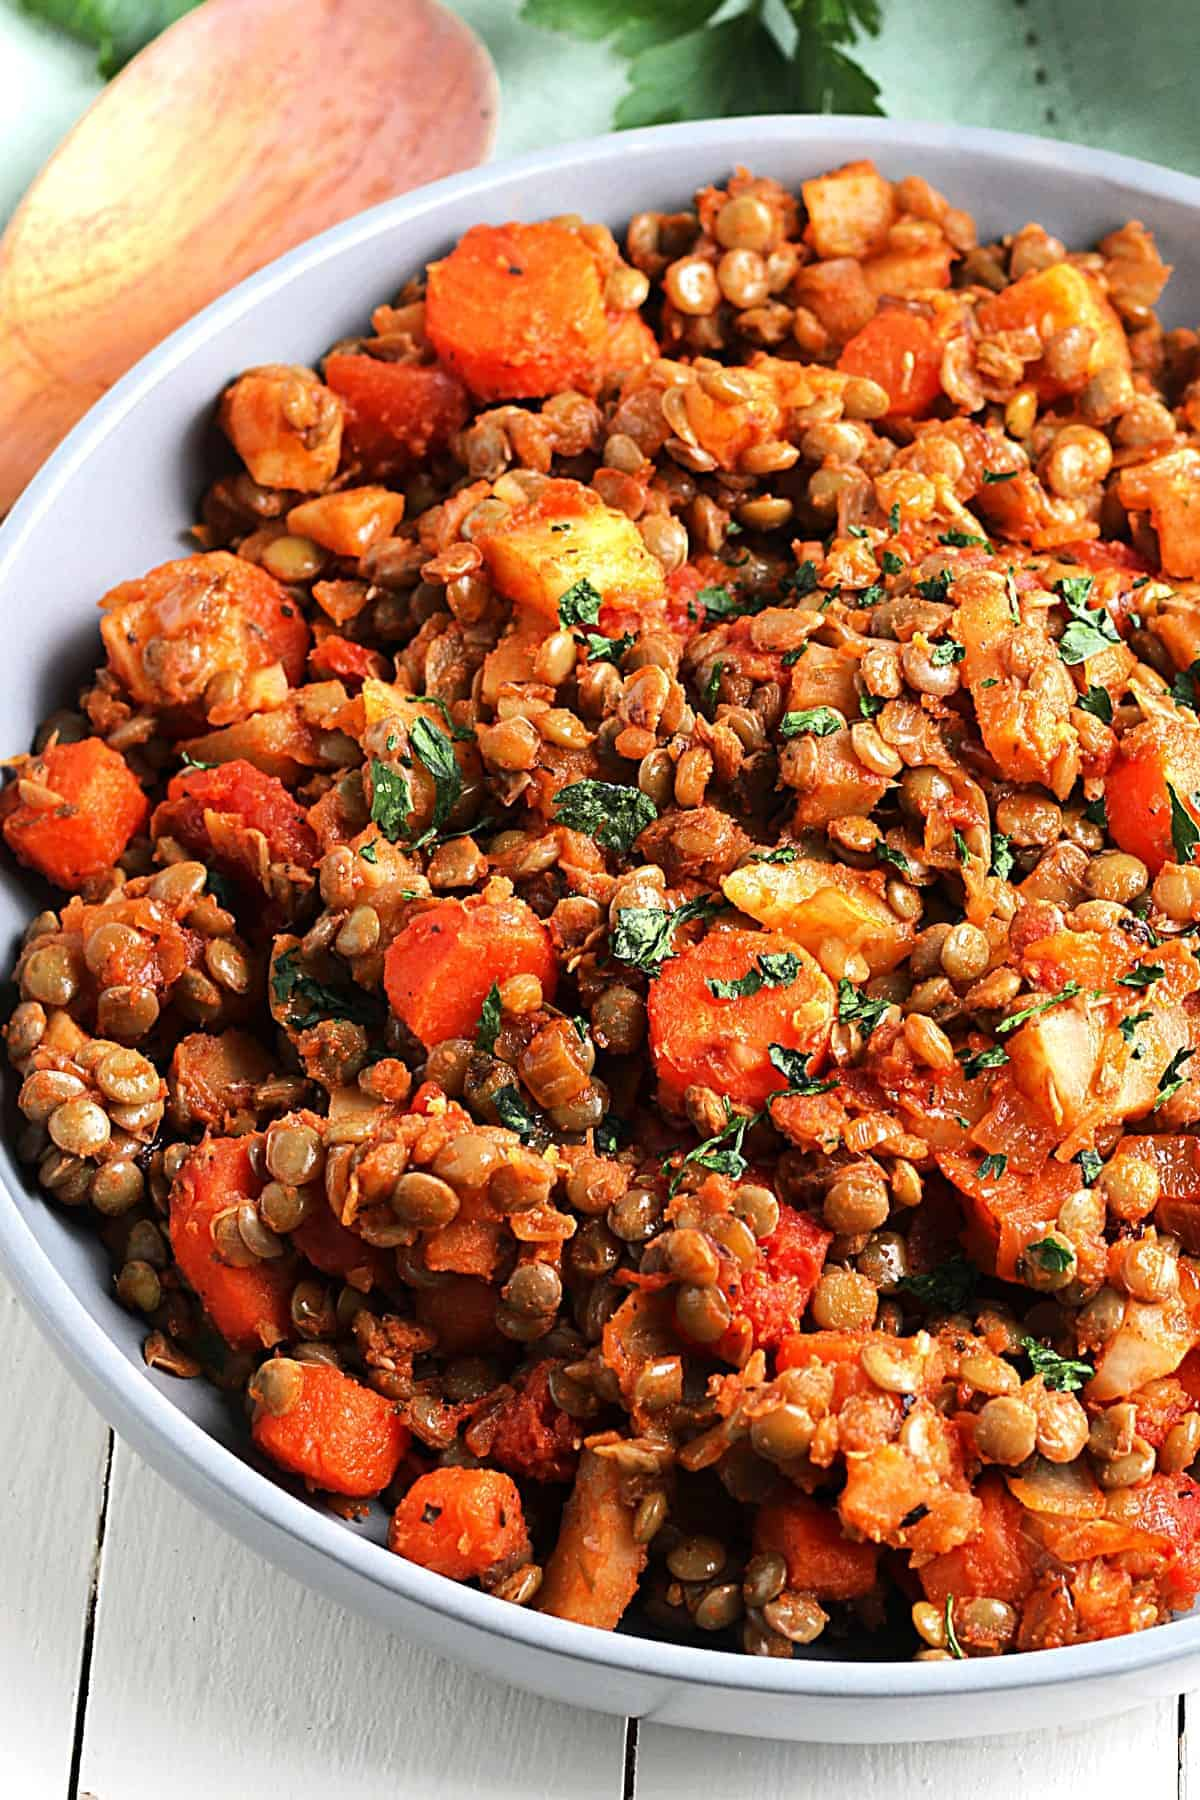 Cropped bowl full of potatoes, tomatoes, lentils and carrots for vegan hash.